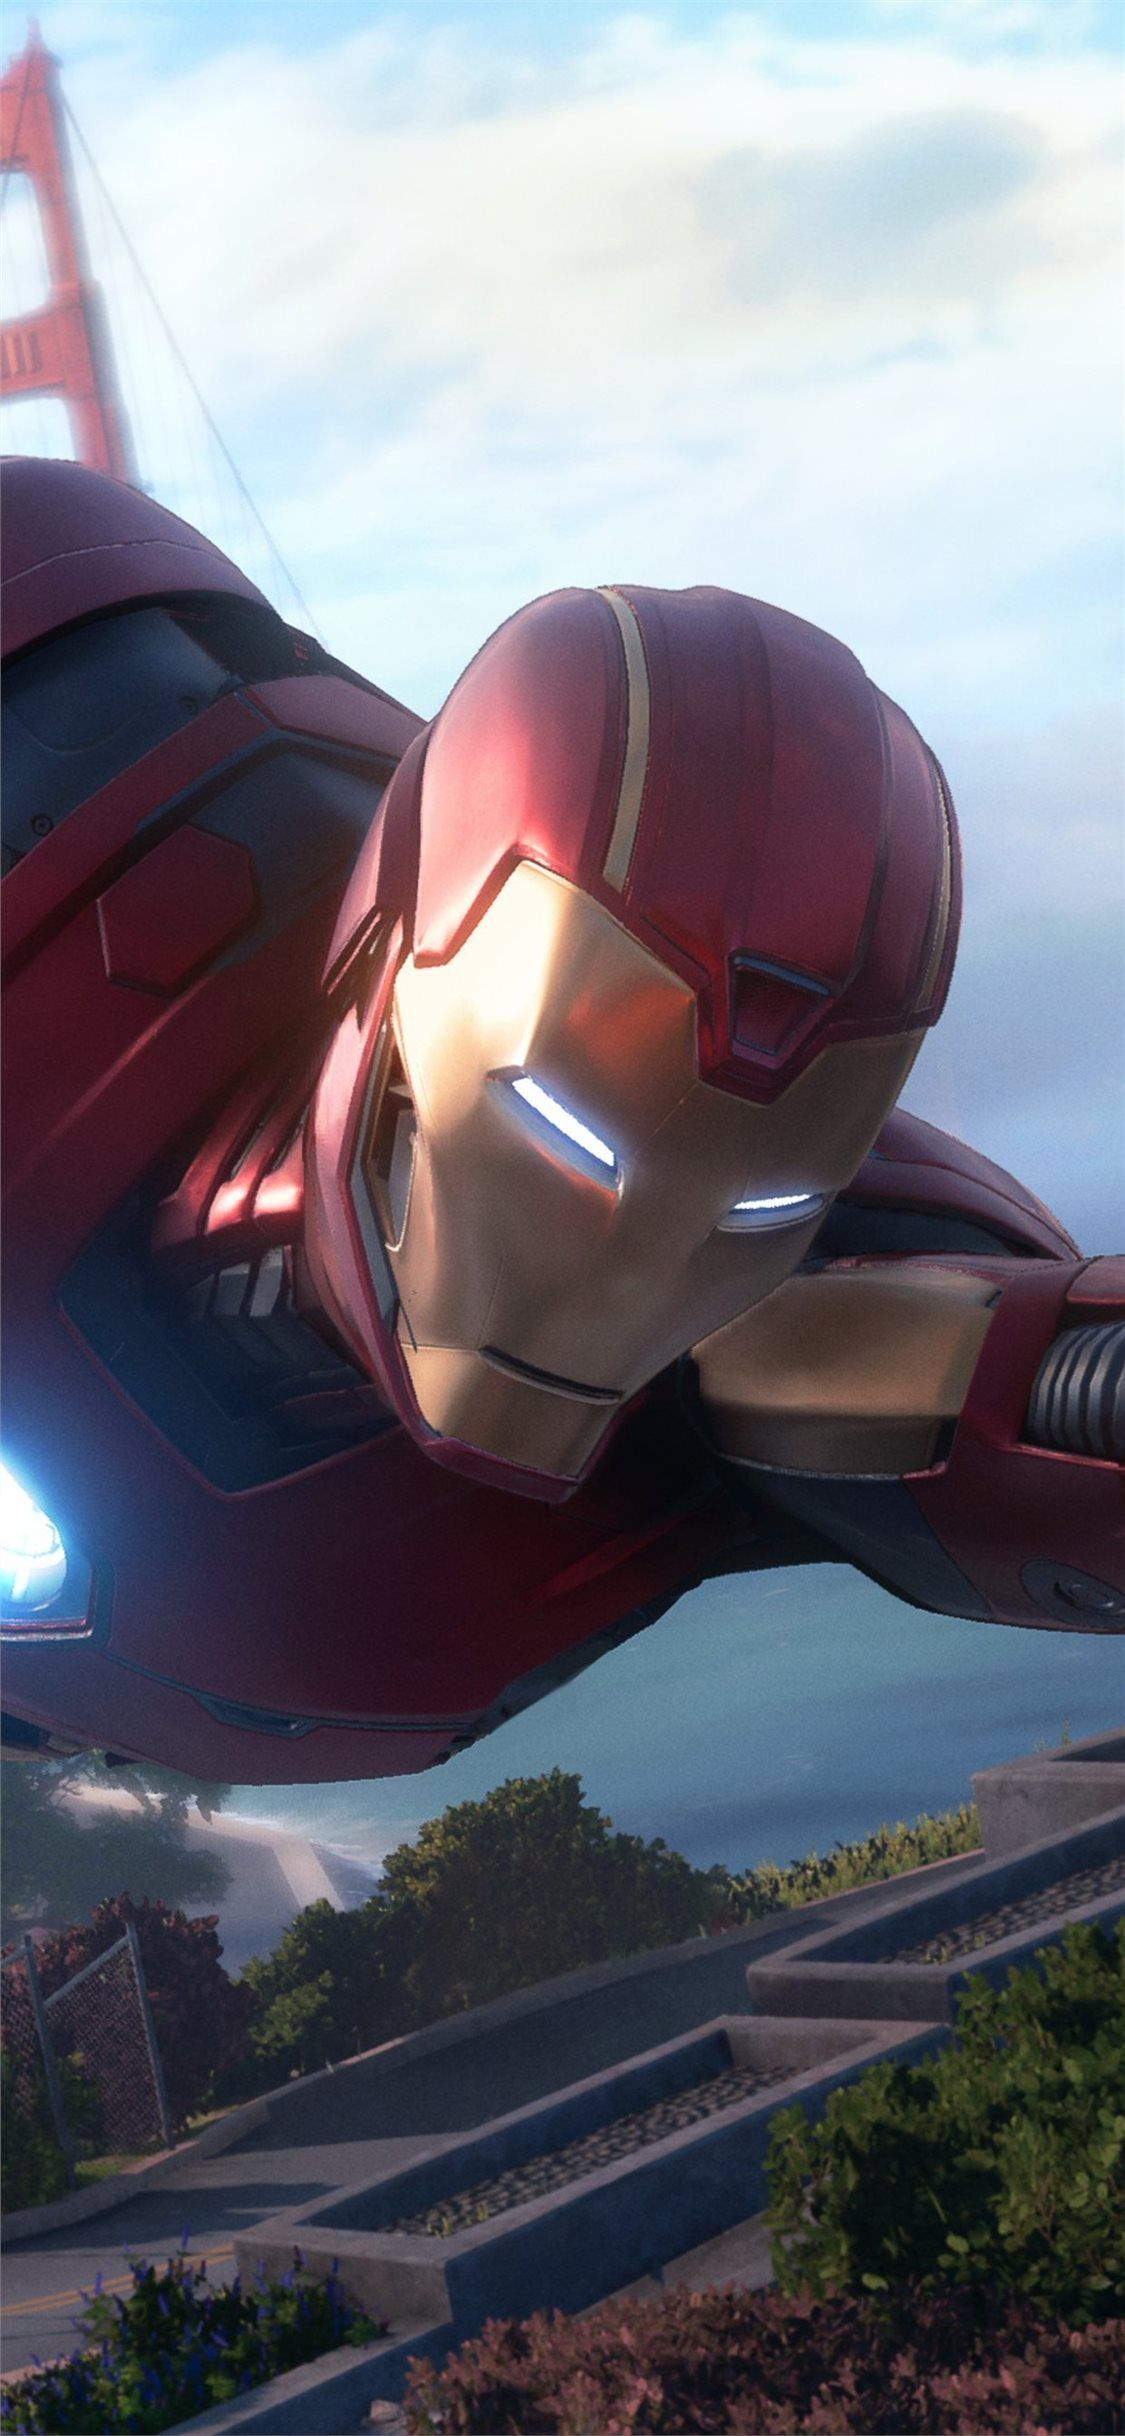 Free download the marvel avengers iron man Wallpaper